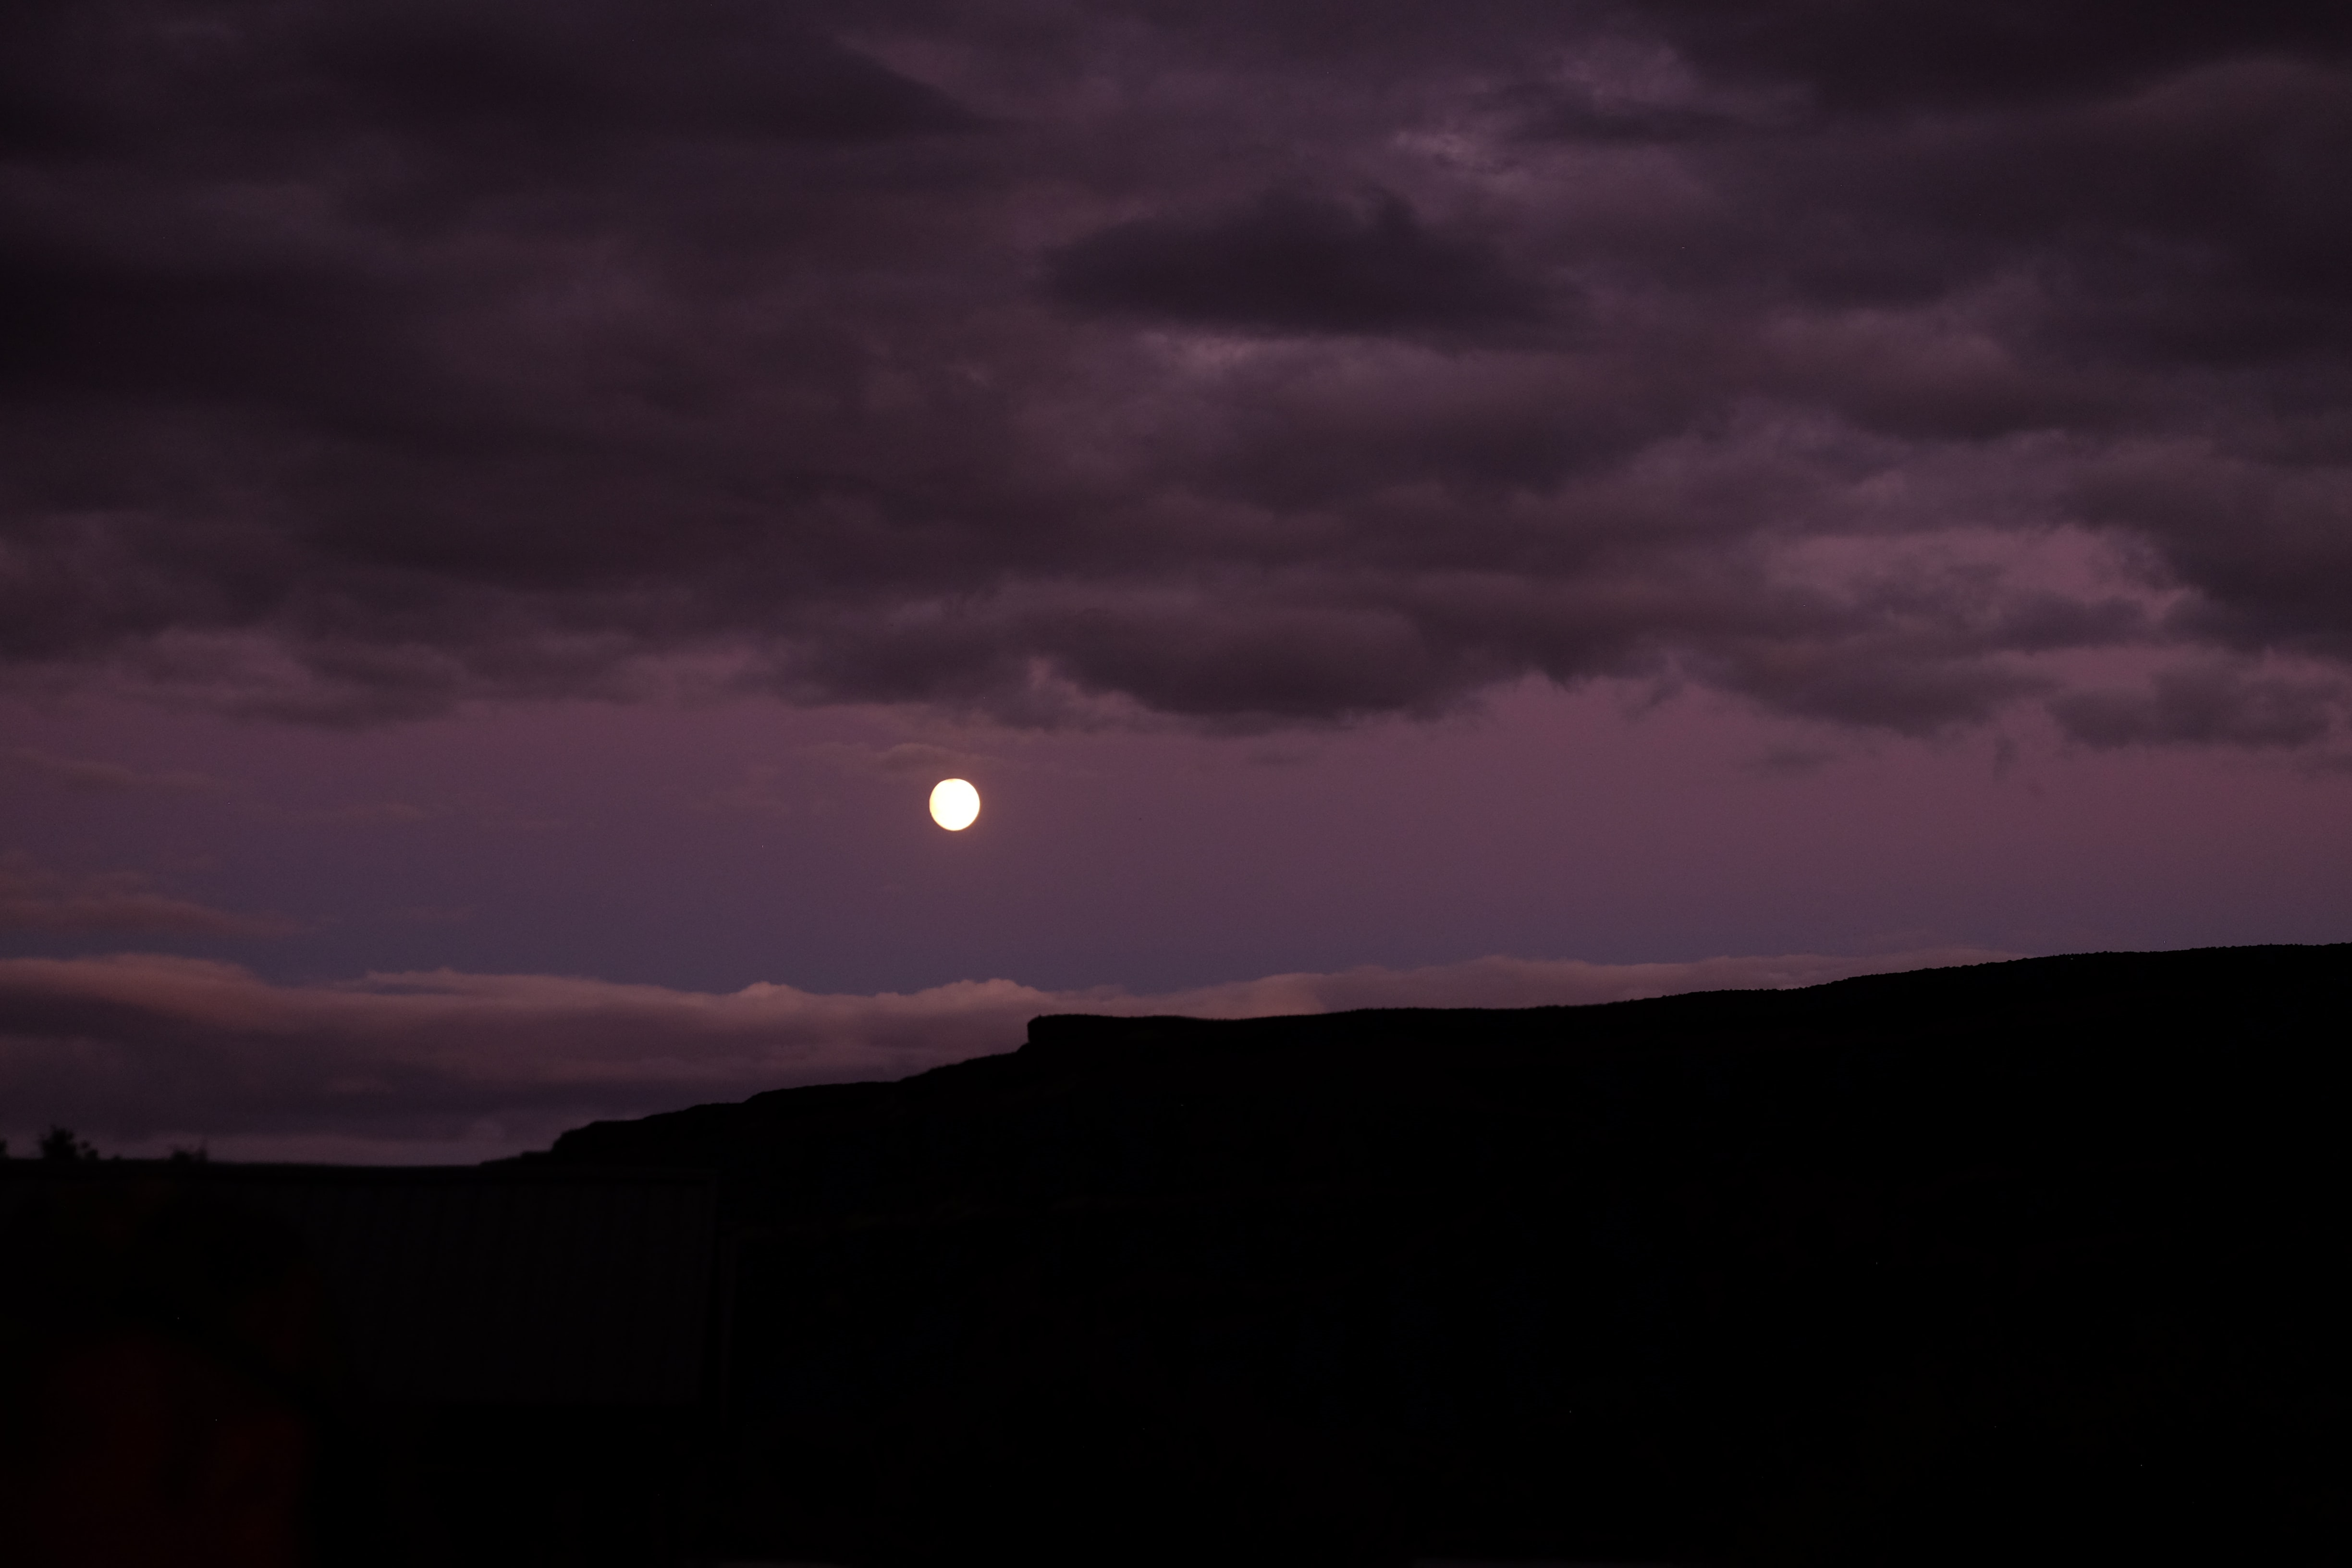 moon under clouds during night time